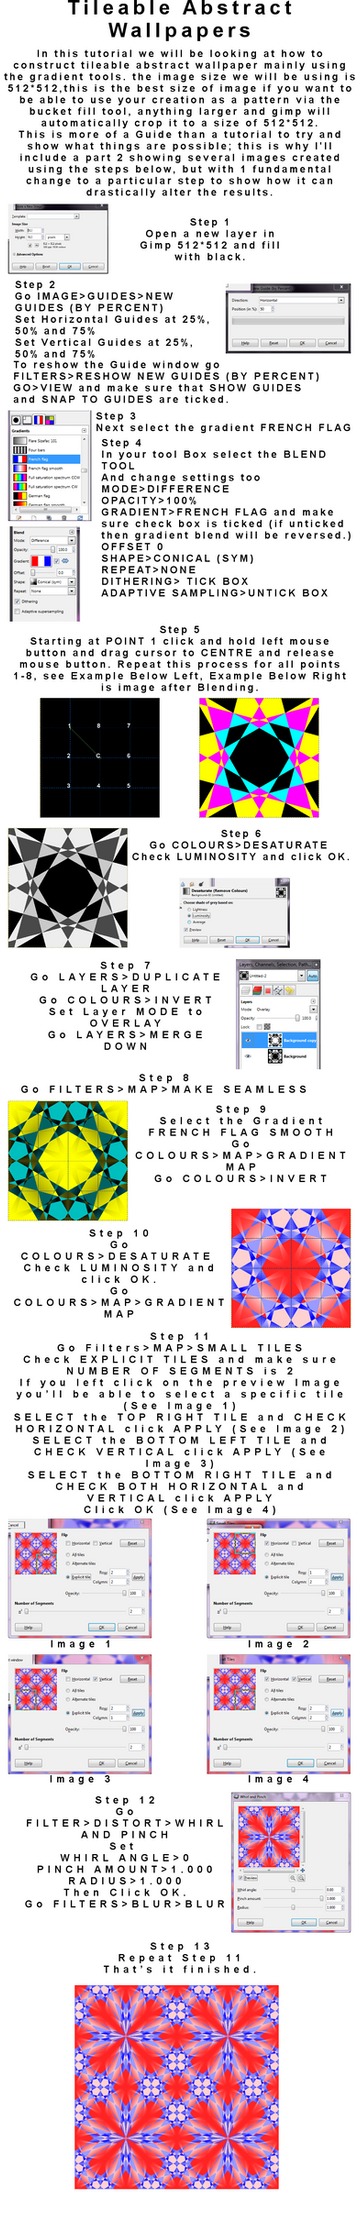 Abstract Gradient Tutorial Pt 1 by he4rty